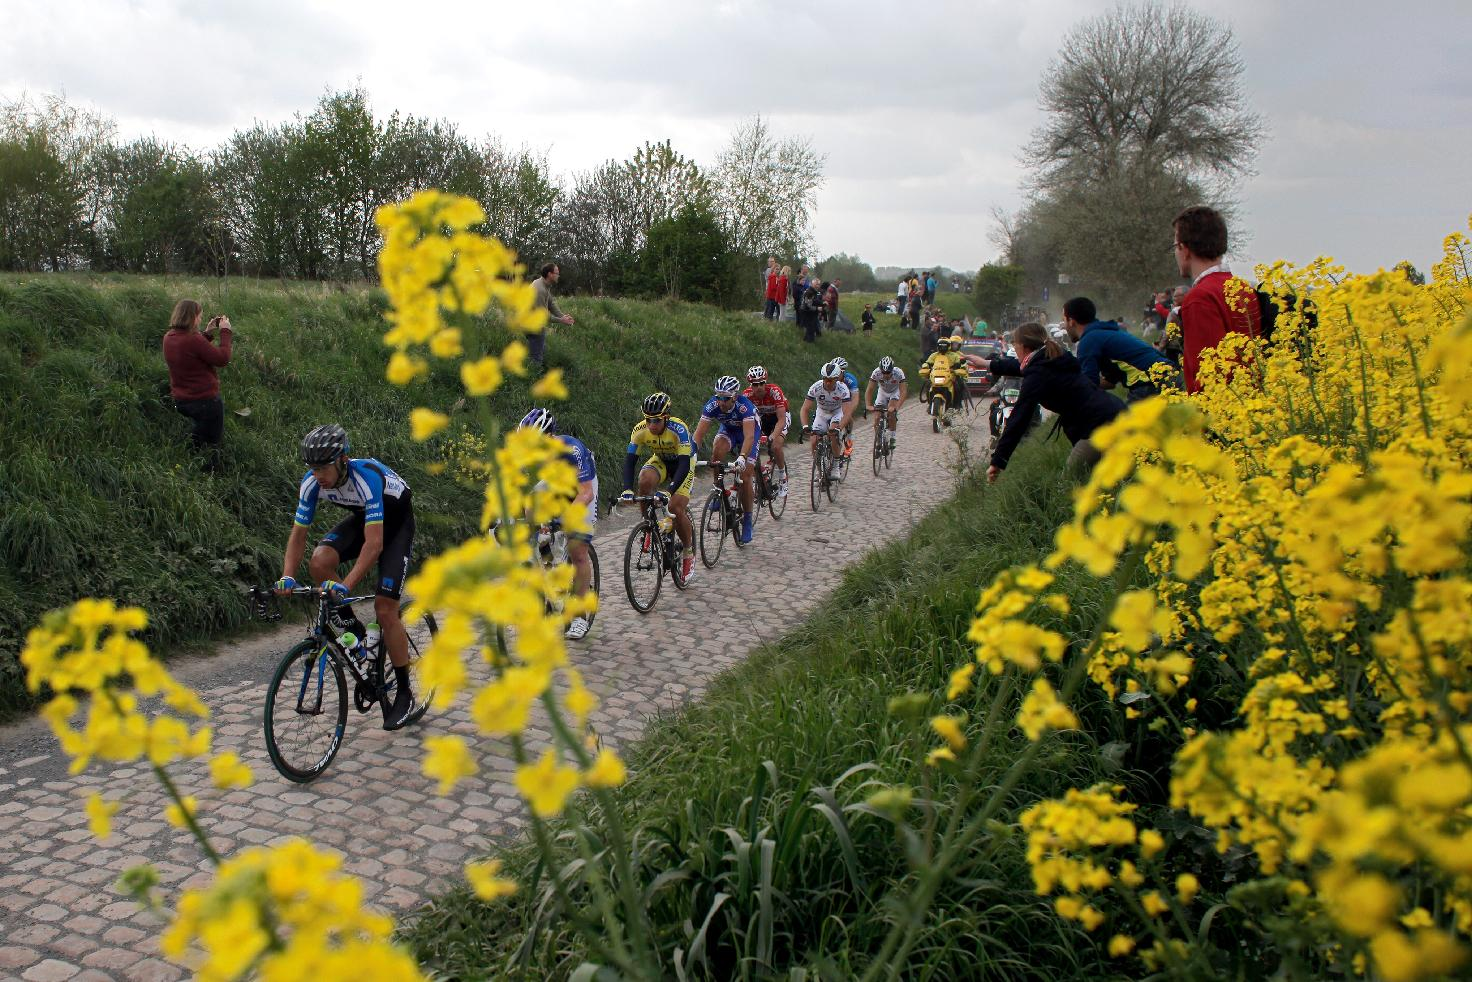 Riders steer their bikes on a cobblestone-paved section during the 112th edition of the Paris-Roubaix cycling classic, a 257 kilometer (159,69 mile) one day race, of which 51,1 kilometers (31,7 miles) are run on cobblestones, at the velodrome in Roubaix, northern France, on Sunday, April 13, 2014